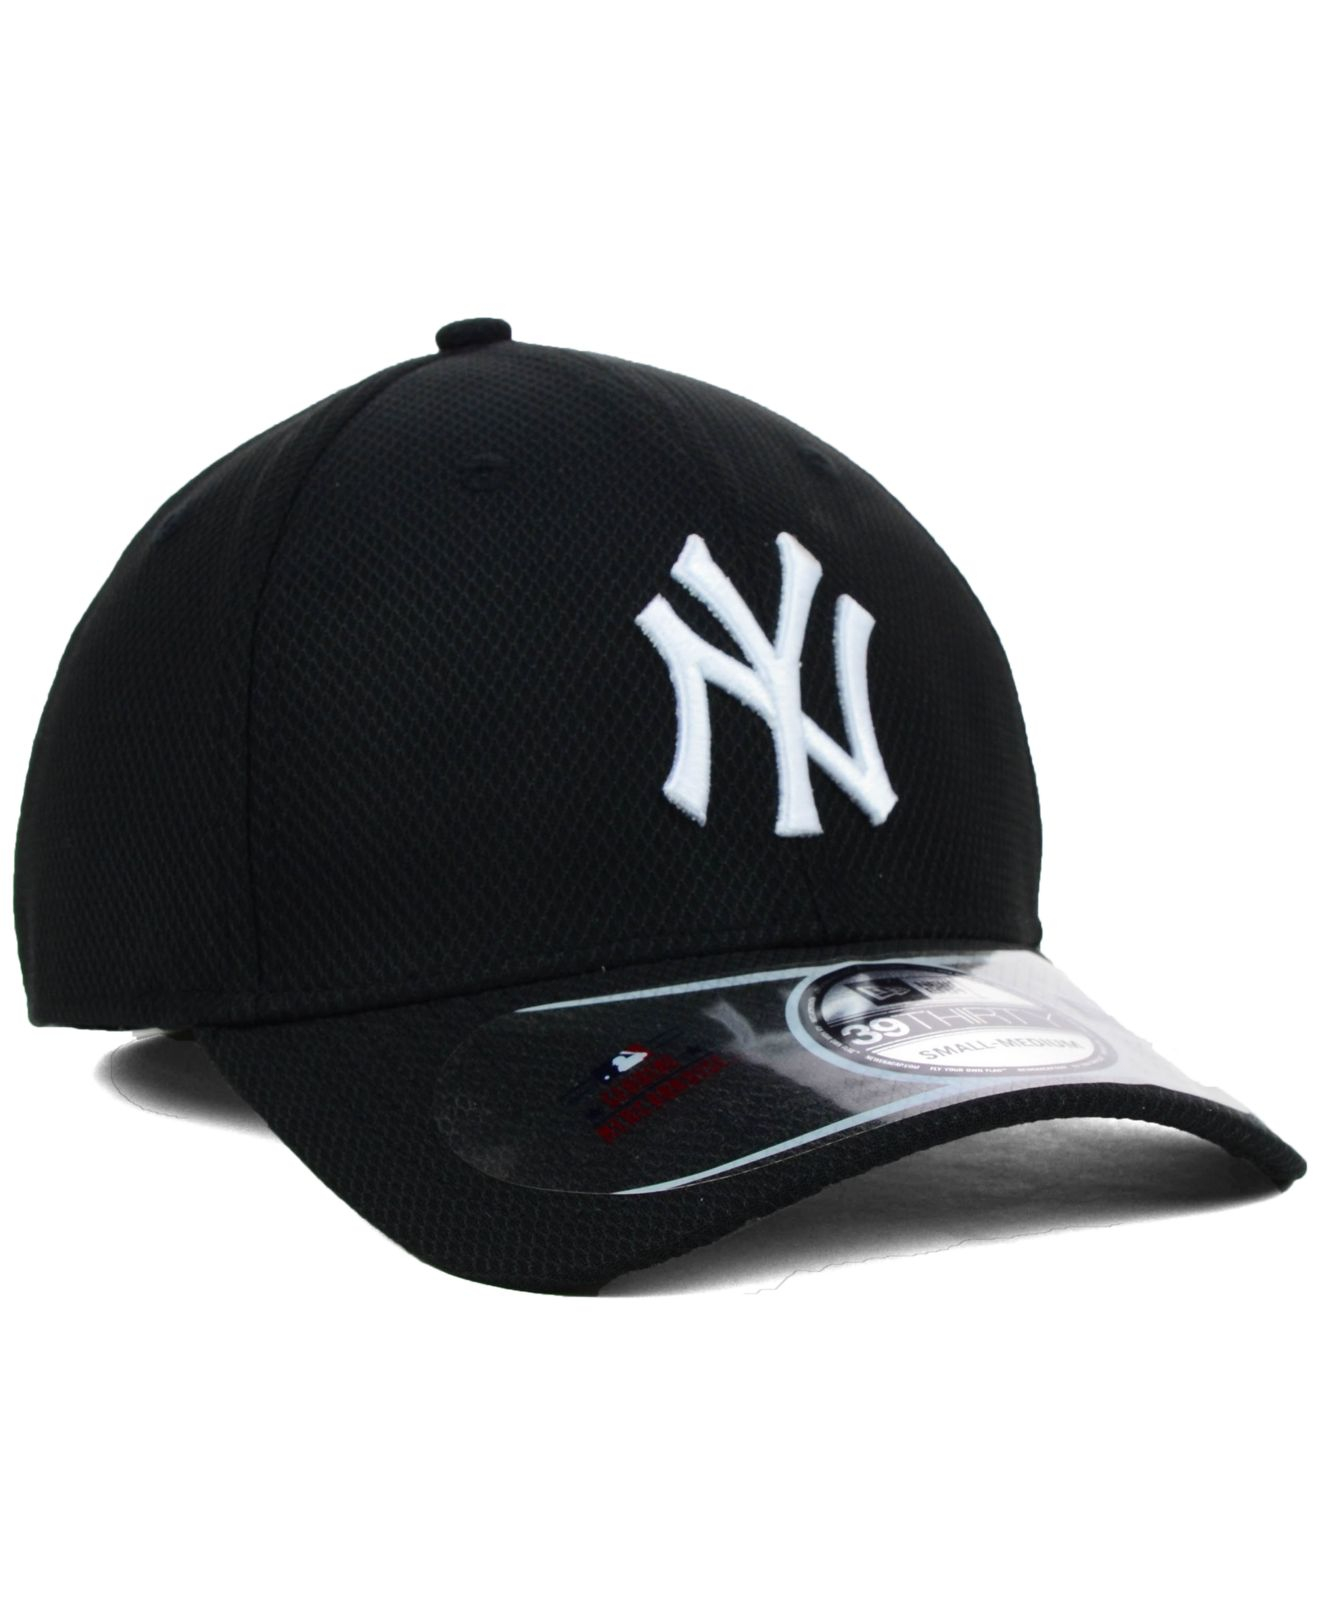 0678f1f6f22e68 ... clearance lyst ktz new york yankees mlb diamond era black 39thirty cap  in eacdd 05e6b